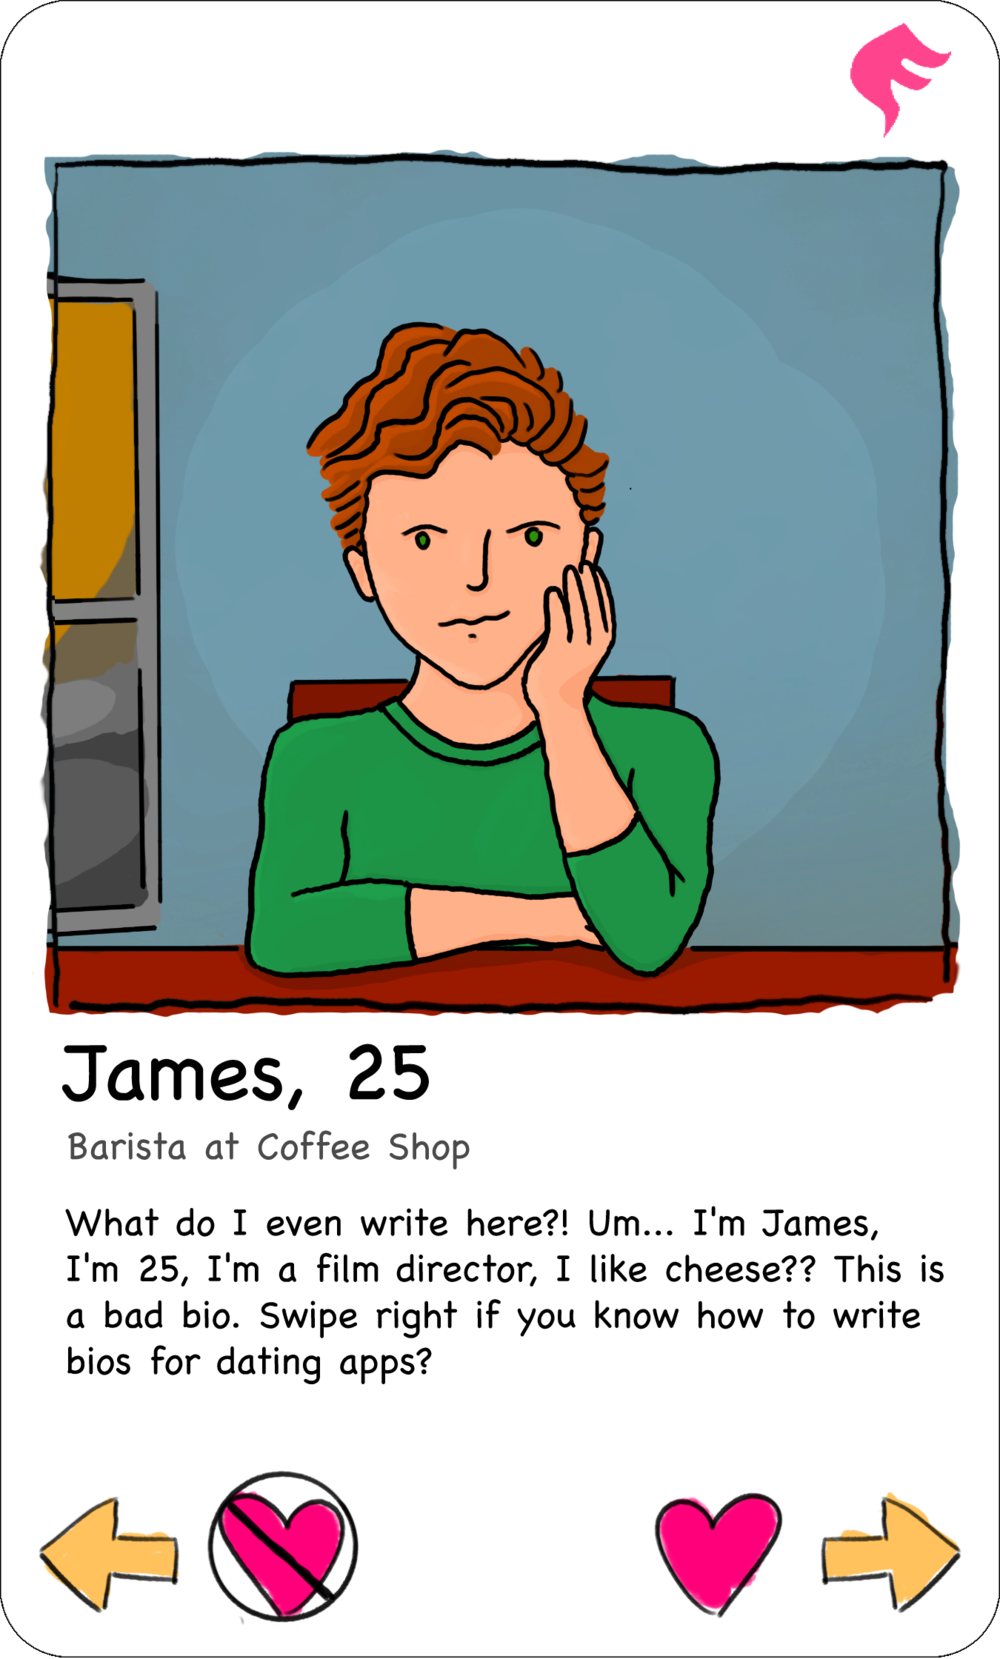 fyr_profile_james.png